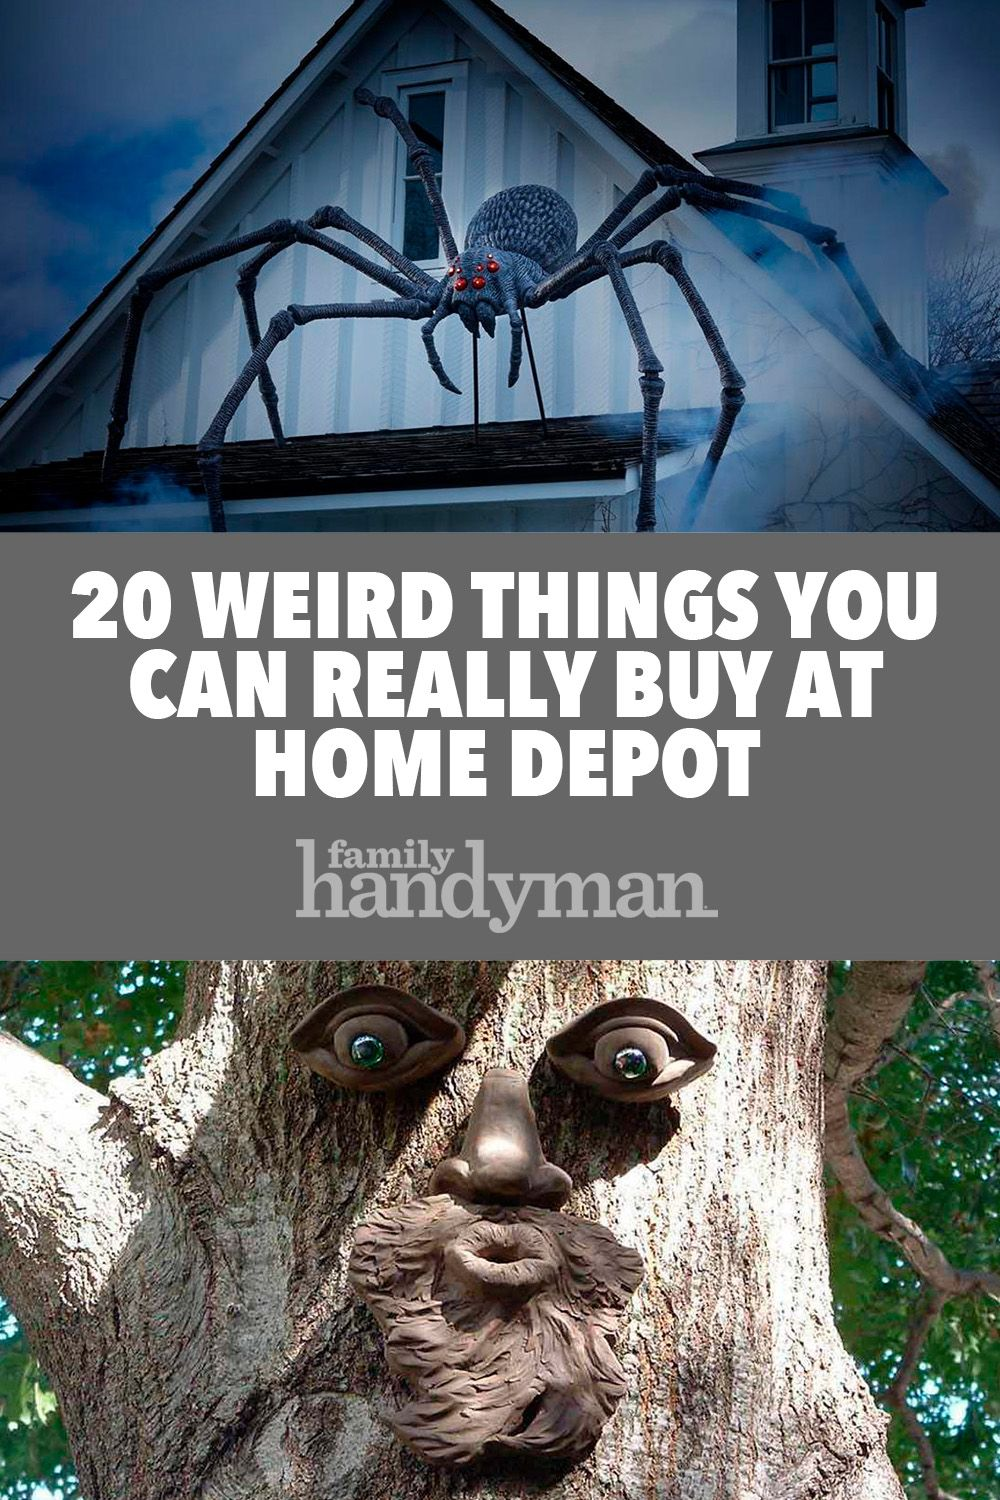 20 Weird Things You Can Really Buy at Home Depot Home depot